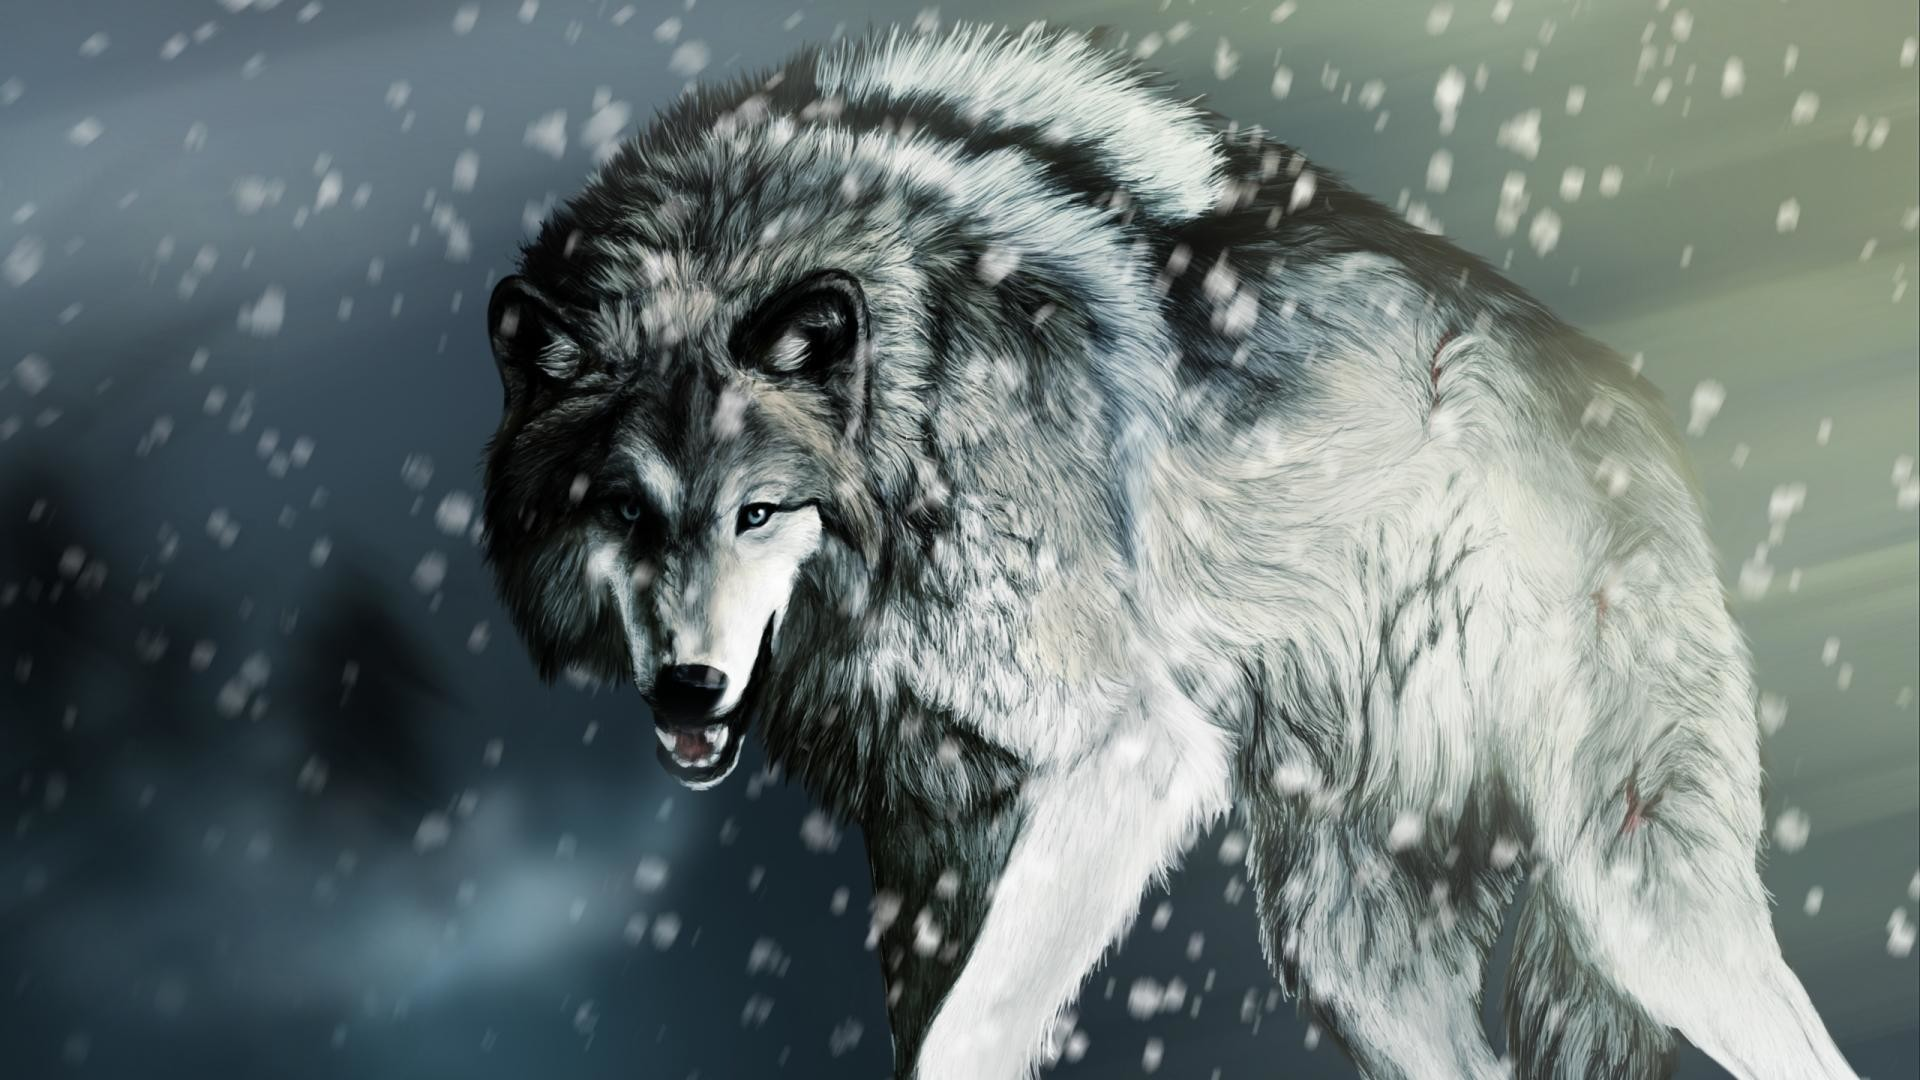 1920x1080 Wallpapers For Cool Wolf Wallpaper Hd